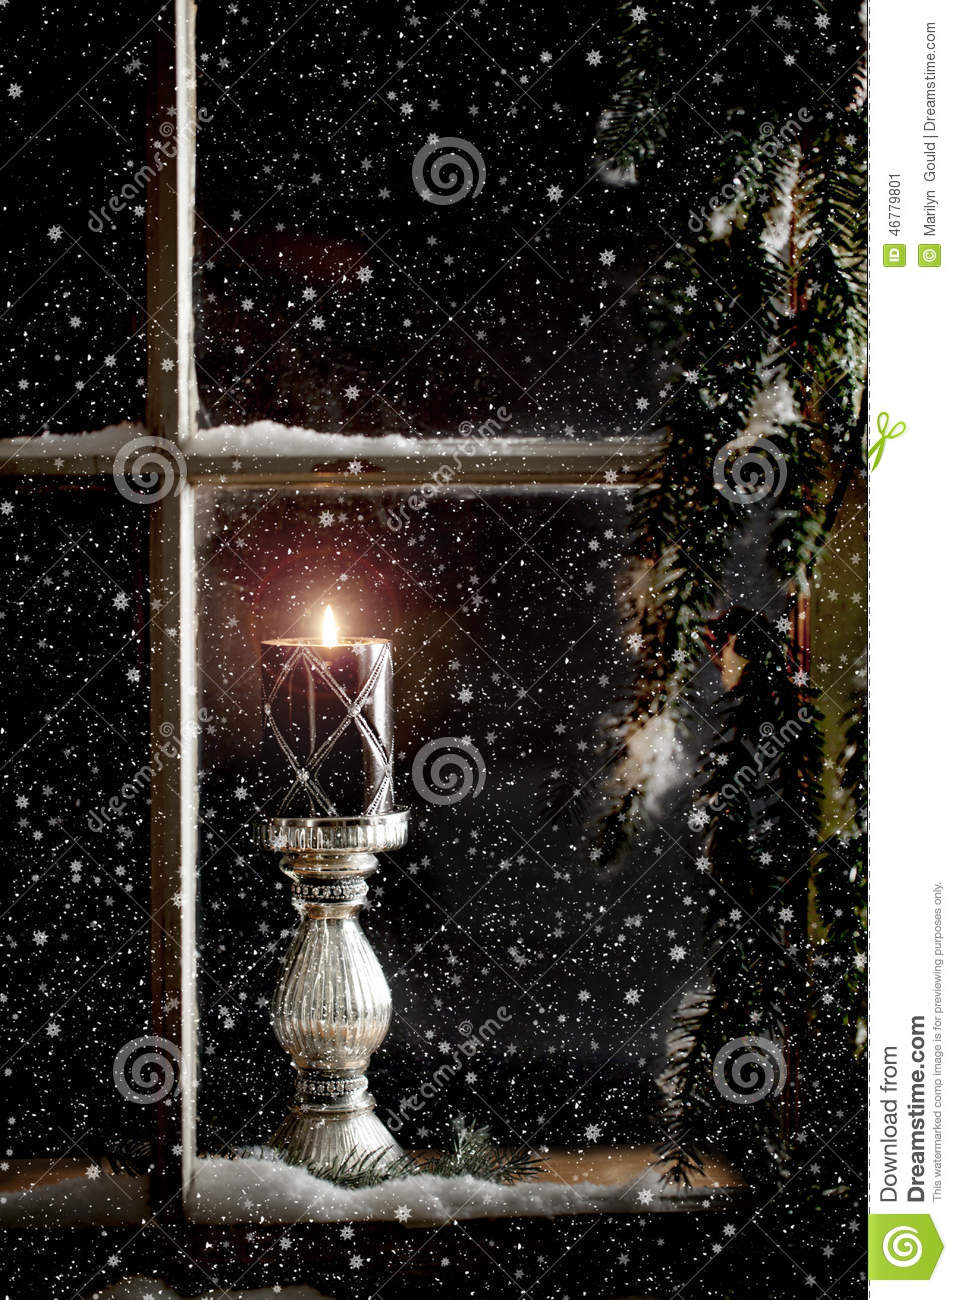 Christmas Wallpaper Gif Animations Burning Candle In Window Stock Image Image Of Winter